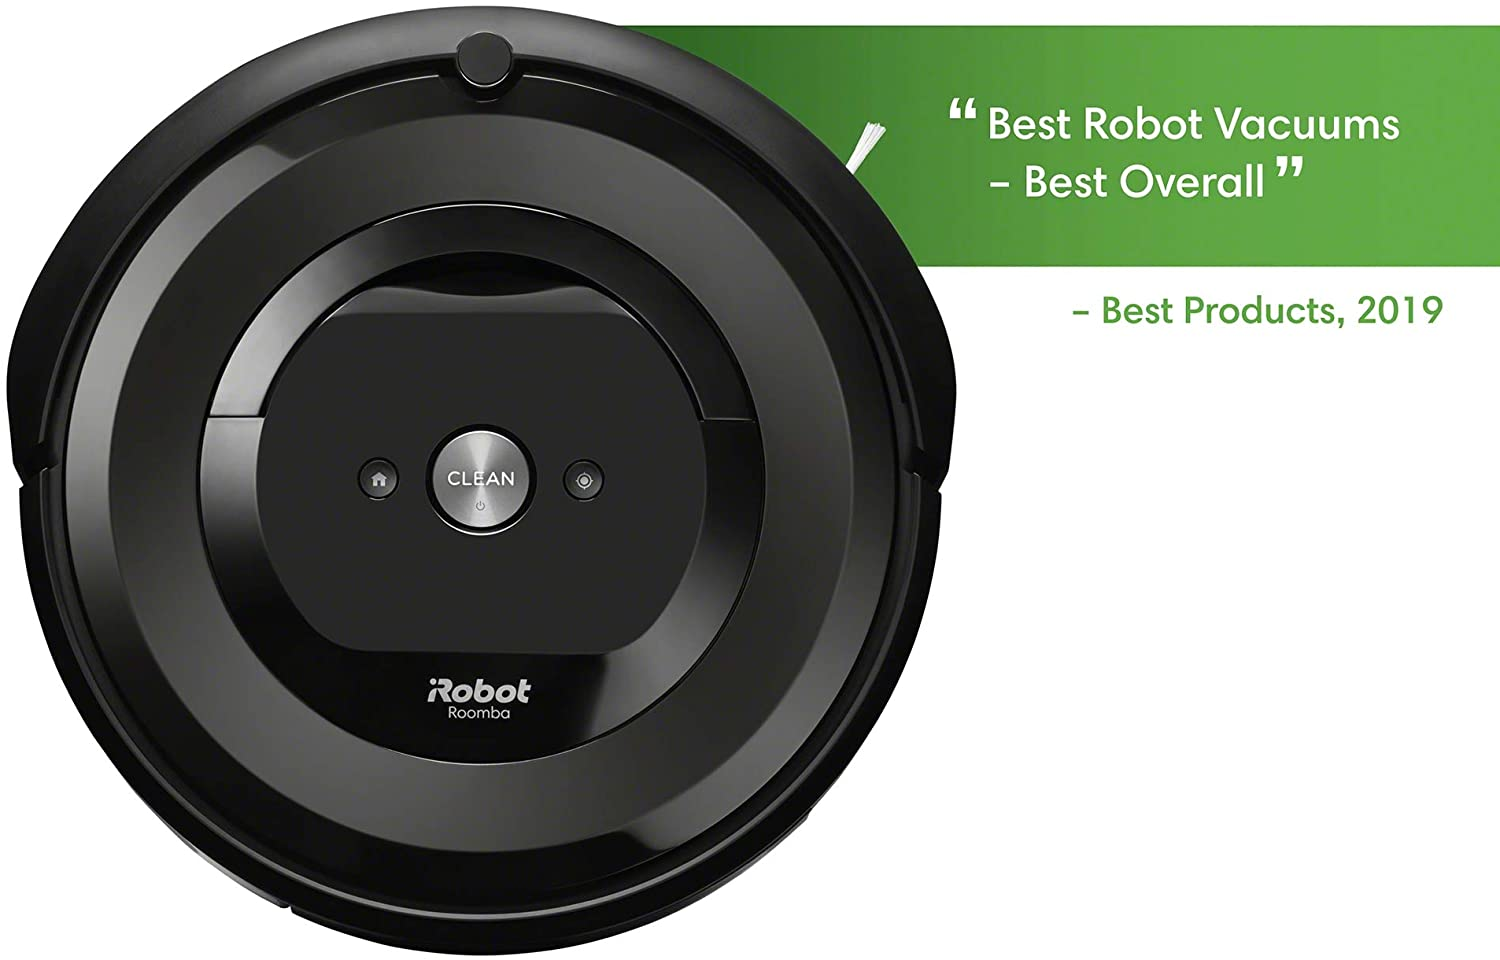 The iRobot Roomba e5 ranks among the top products